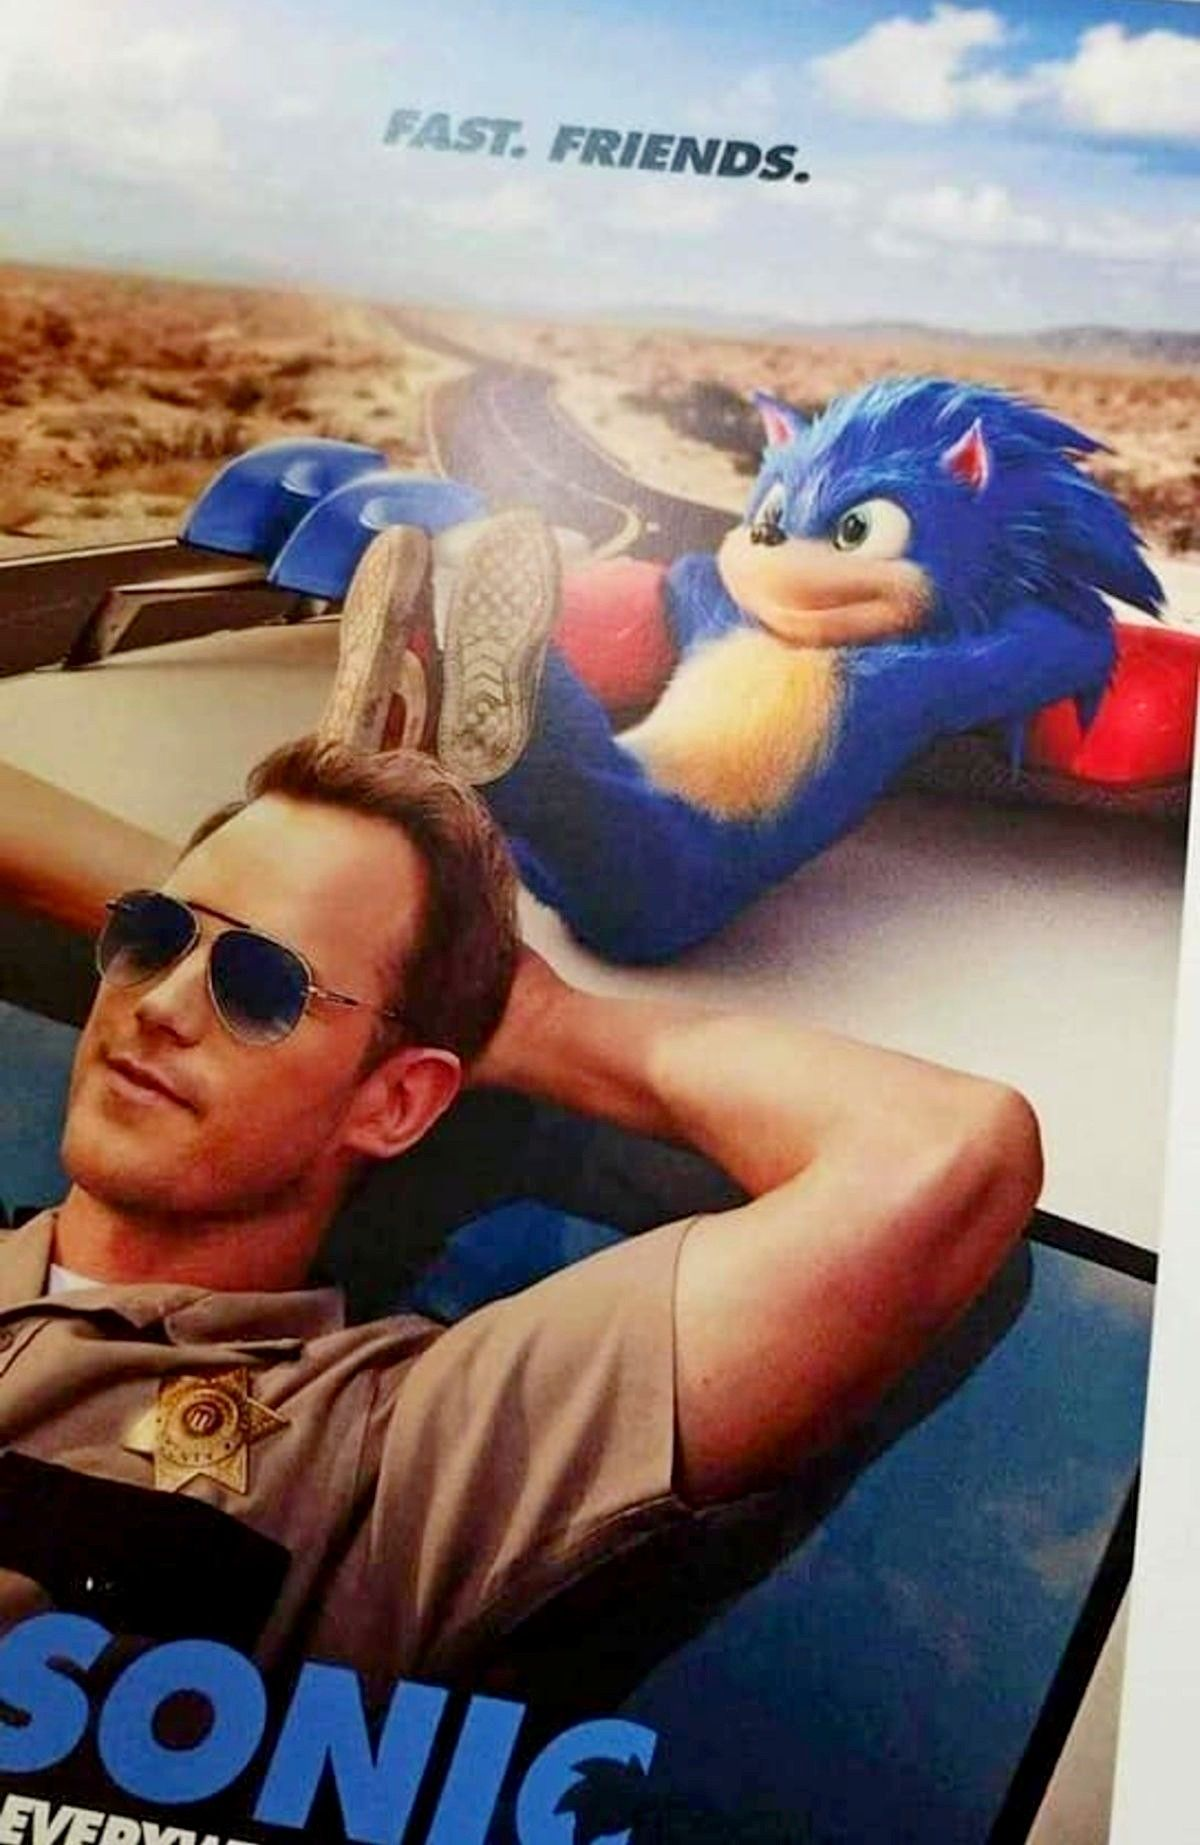 Tails Channel Sonic The Hedgehog News Updates On Twitter Hedgehog Movie Sonic The Movie Sonic